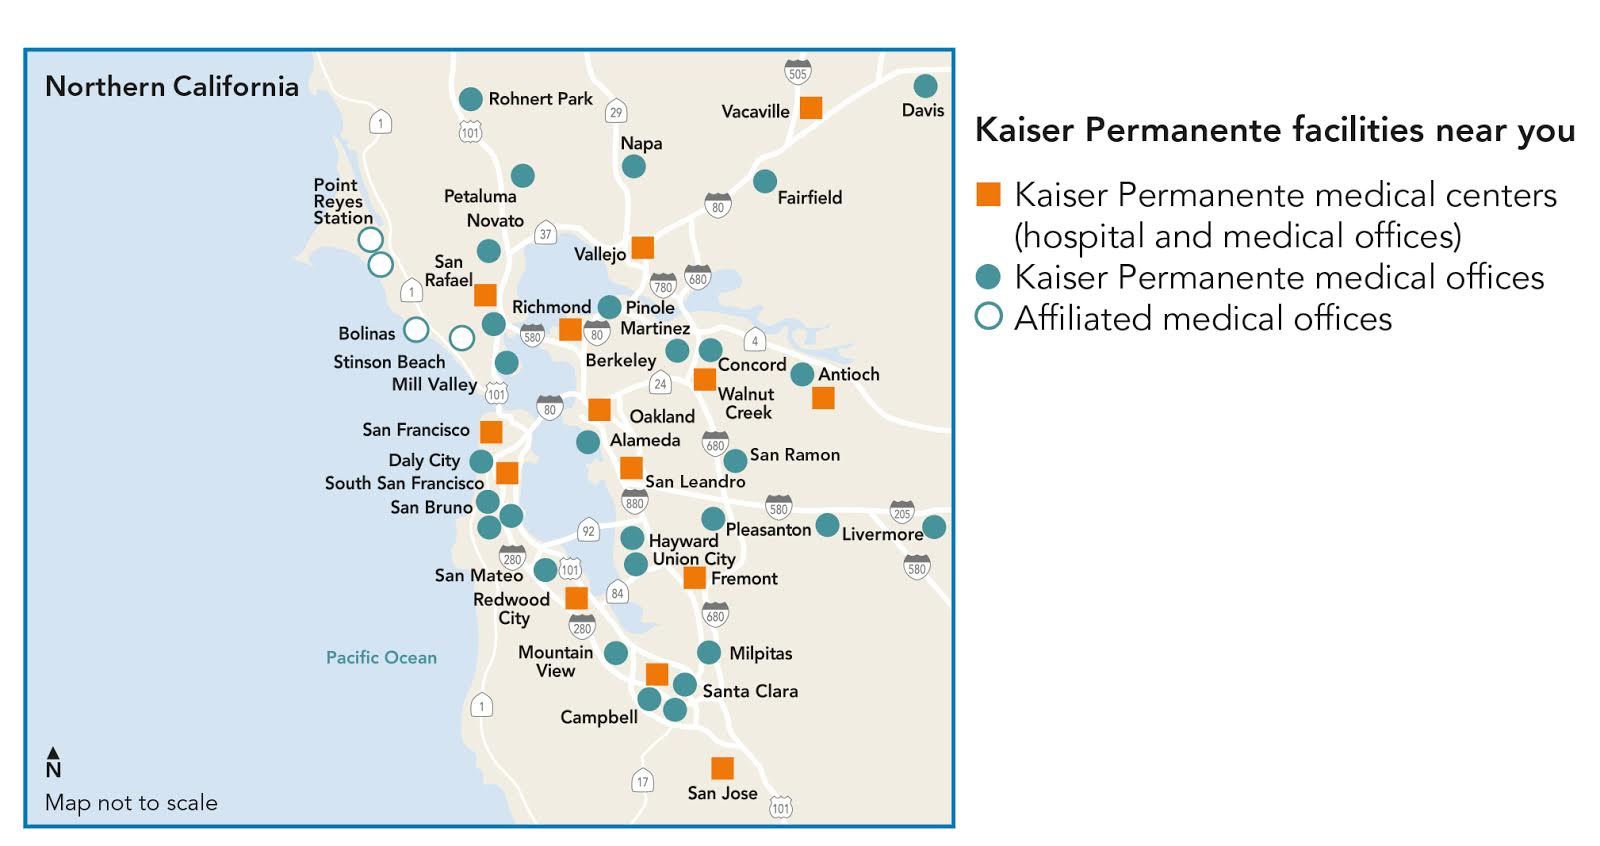 Kaiser Permanente® | UC Berkeley | University of California on marshall hospital map, stanford hospital map, miller county hospital map, cosumnes river college map, anderson hospital map, contra costa college map, franklin hospital map, mission hospital map, walmart map, davis hospital map, el camino hospital map, doctors medical center map, butler hospital map, safeway map, mission san diego de alcala map, bank of america map, whole foods map, good samaritan hospital map, san joaquin delta college map, genentech map,